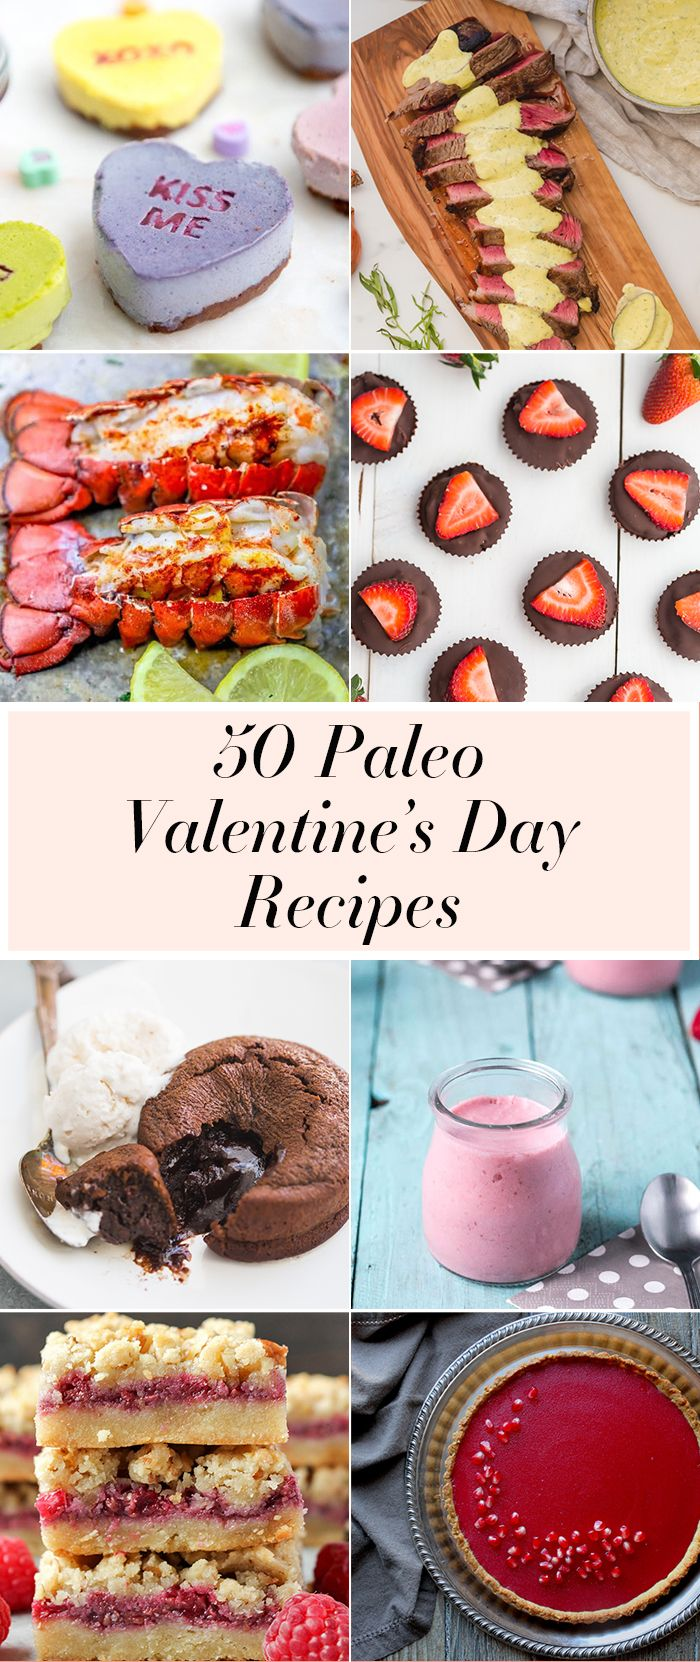 I've compiled 50 paleo Valentine's Day recipes for a totally magical (and healthy!) Valentine's at home. From chocolate to paleo conversation hearts, lobster to Whole30 steak with bearnaise sauce, this roundup of paleo Valentine's Day recipes is your go-to for a delicious love day. And you know what? You could have an altogether killer Galentine's Day brunch with these paleo Valentine's Day recipes. Focus on the desserts, of course! #whole30 #whole30recipes #paleo #paleorecipes…